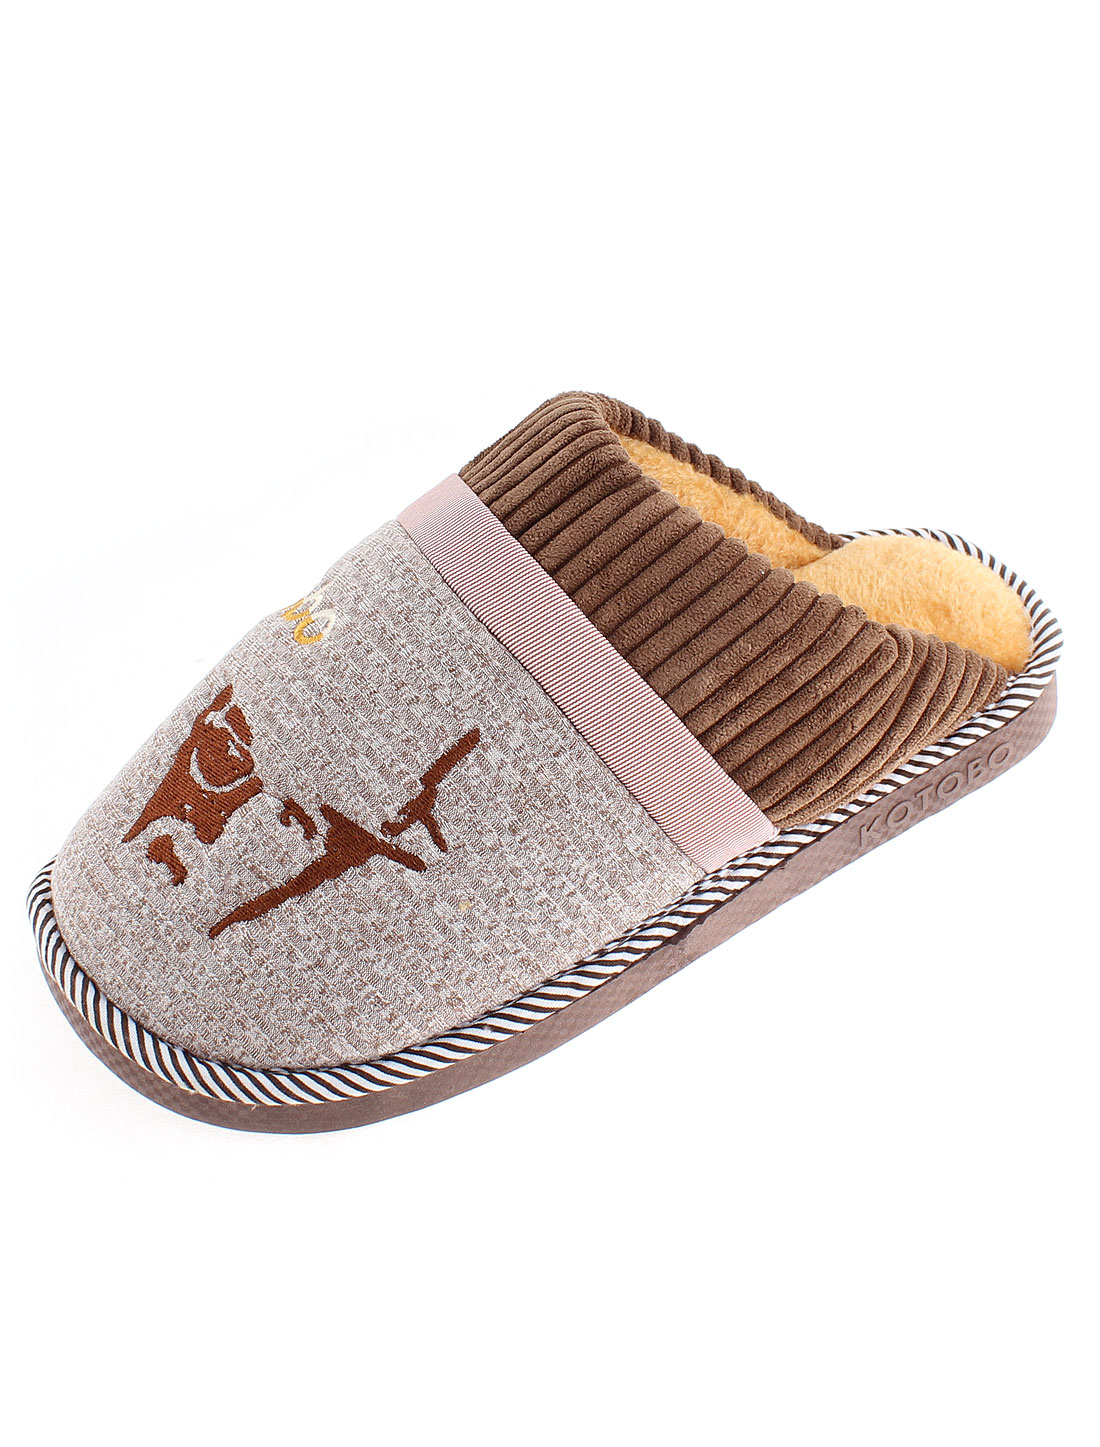 Women Winter Wearing Anti Slip Warmer Cotton Slippers Brown US 8.5